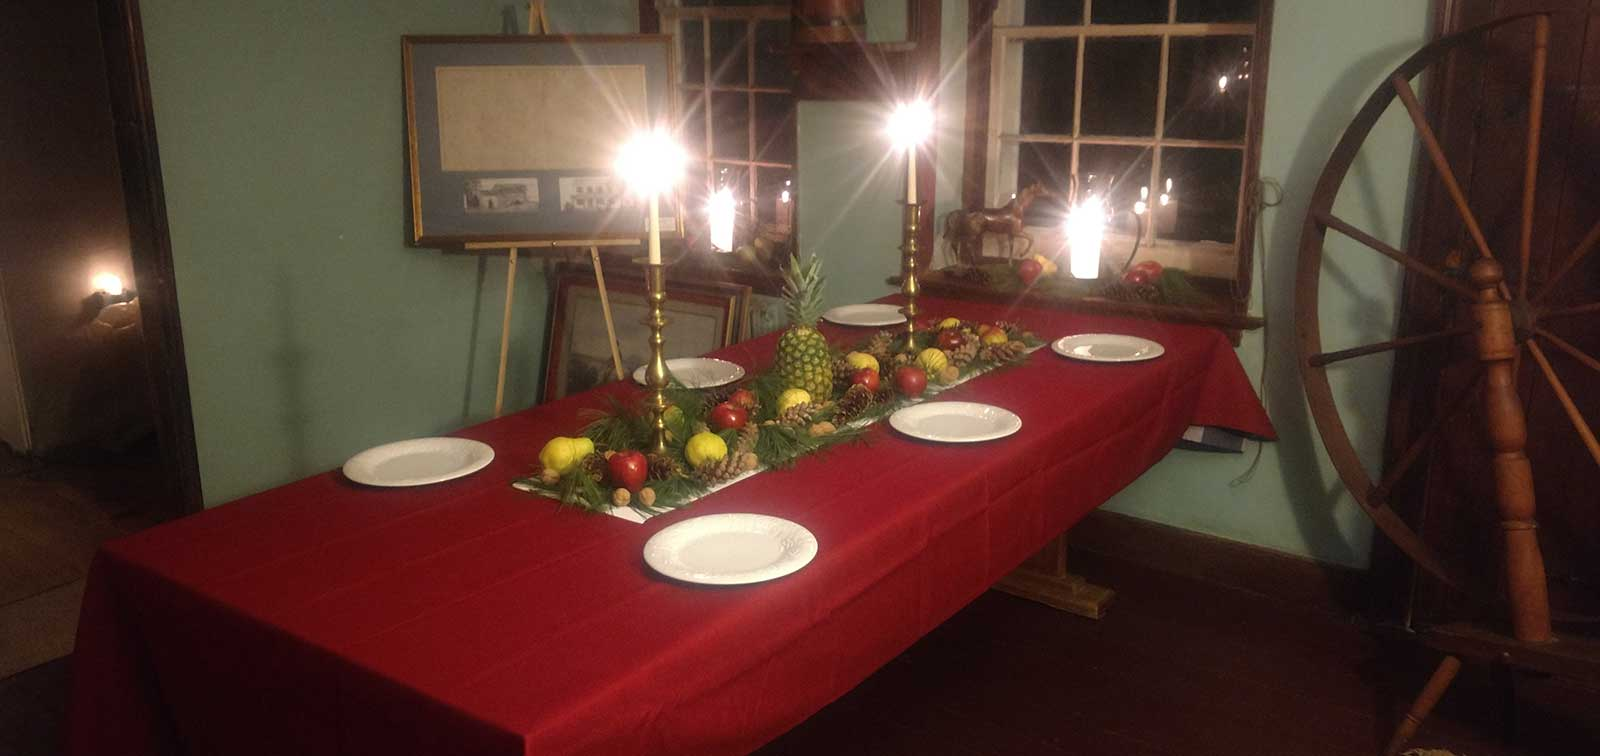 photo of table with red table cloth and senter runner with pears, apples and pineapple